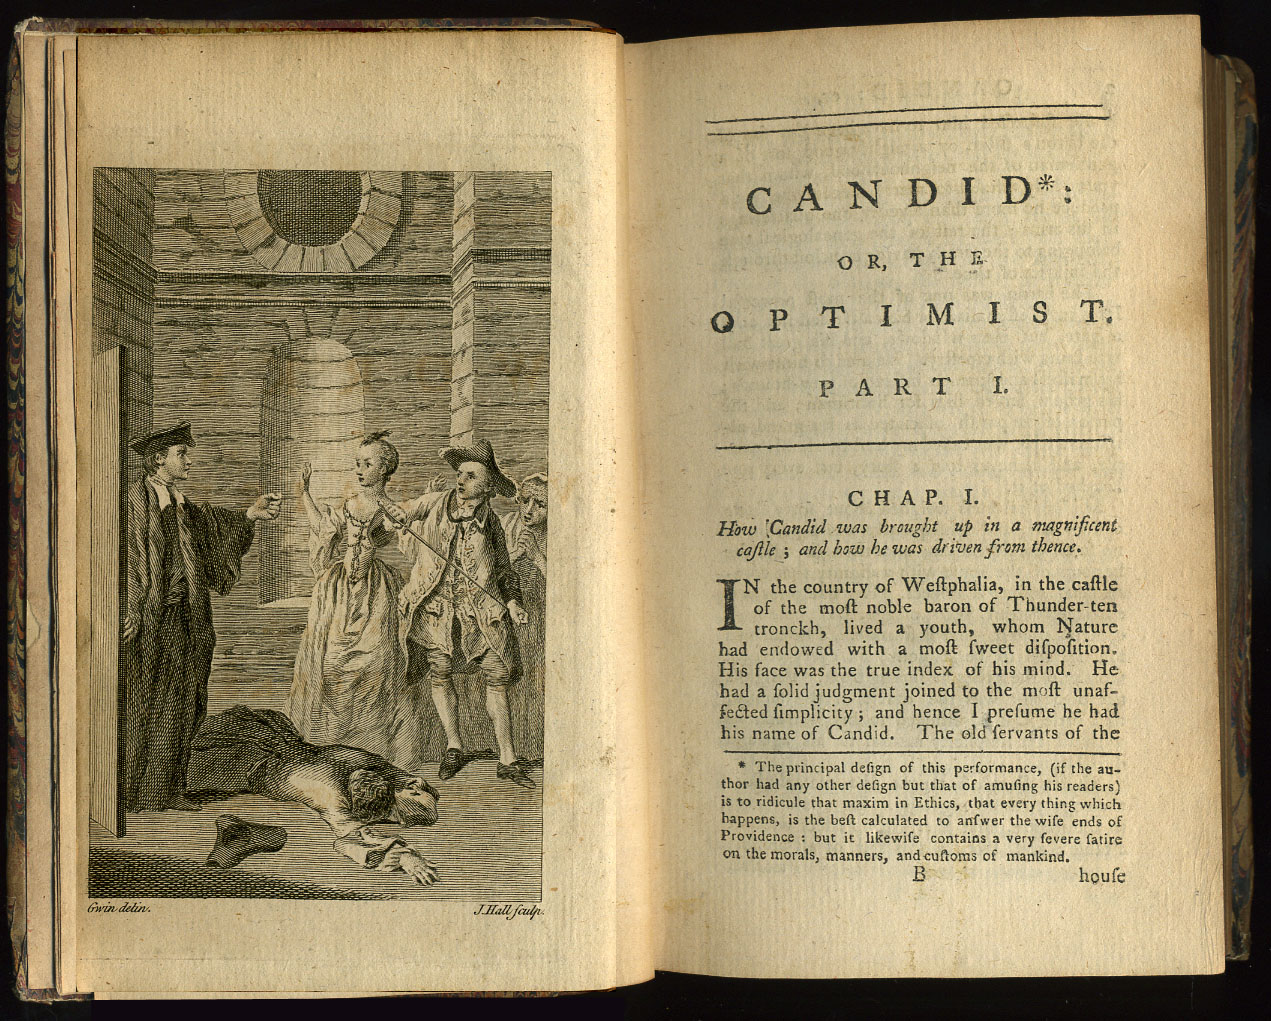 Candide-opening